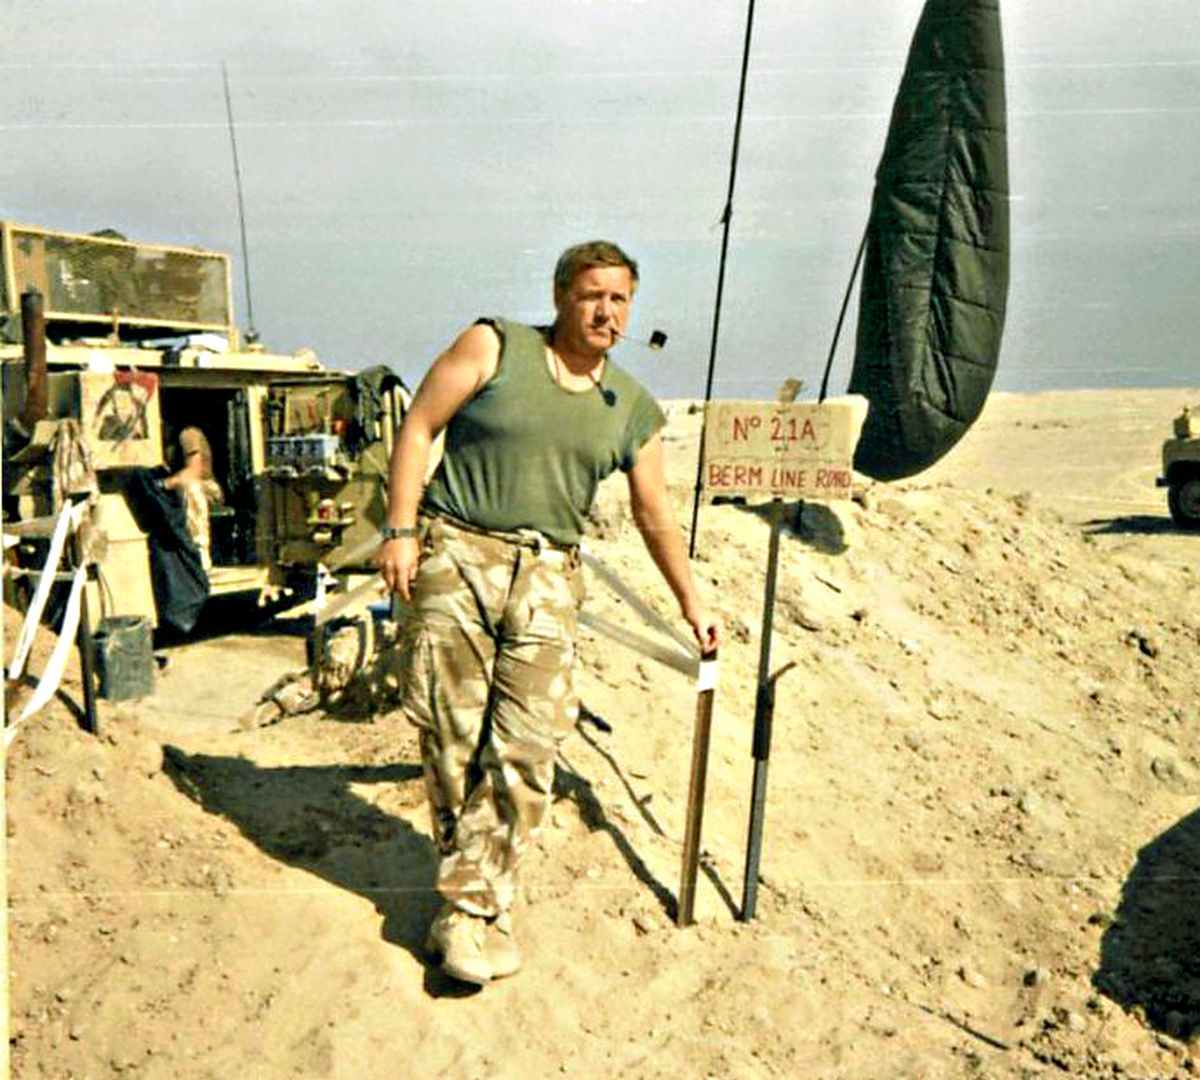 Sgt Major Keith Hodgson in newly-liberated Kuwait, waiting to go home.